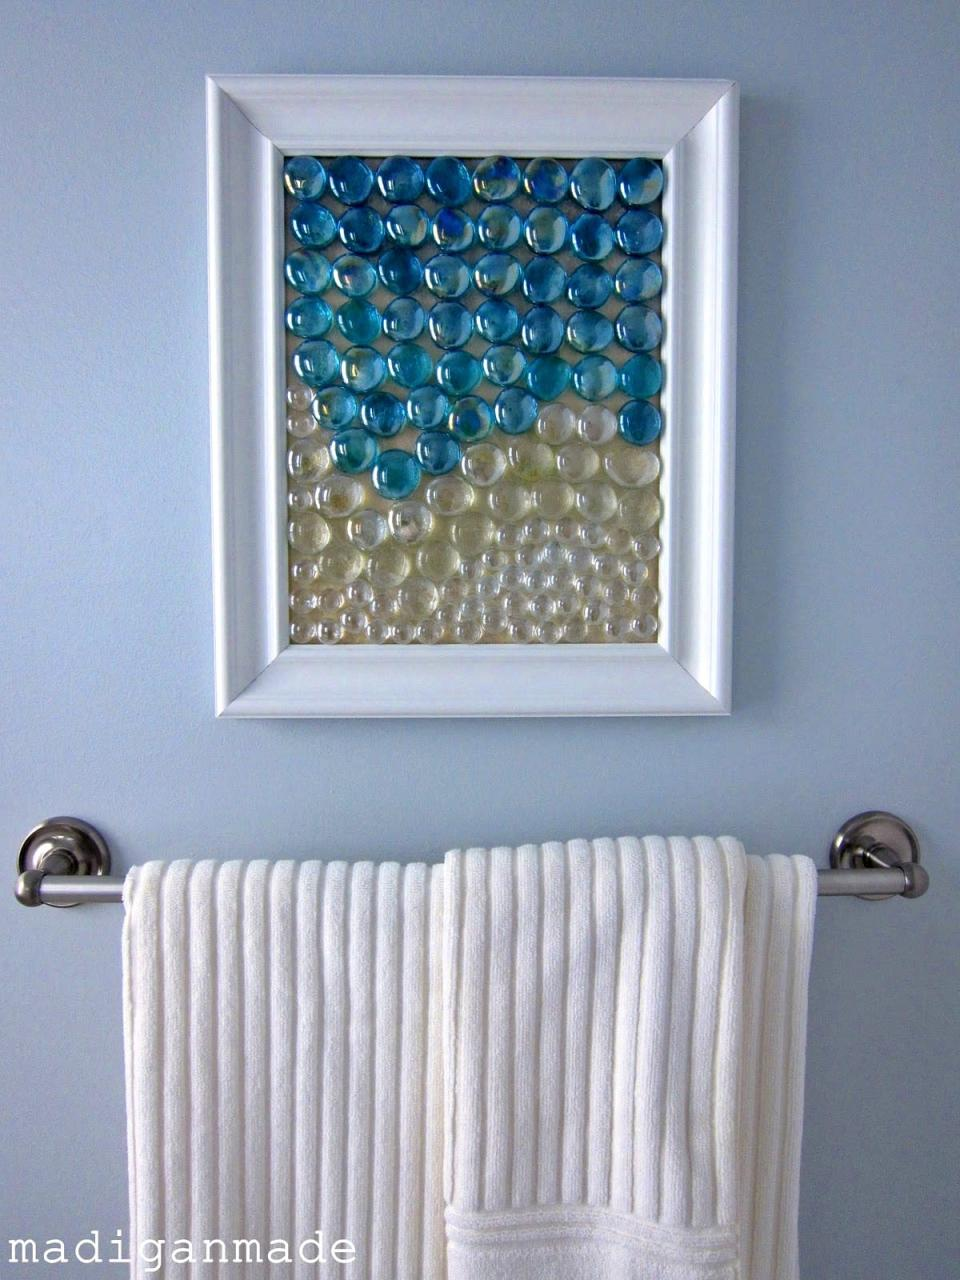 "<div class=""caption-credit""> Photo by: Madigan Made</div><b>Glass Gems</b> <br> Use pretty glass gems in a frame to make fun wall art for your home. The transparent colors give the impression of water and look especially great in a bathroom or kitchen. <br> <i><a href=""http://www.madiganmade.com/2011/03/beachy-glass-gem-wall-art-waters-edge.html"" rel=""nofollow noopener"" target=""_blank"" data-ylk=""slk:Get the tutorial"" class=""link rapid-noclick-resp"">Get the tutorial</a></i> <br> <b>More on Babble</b> <br> <a href=""http://www.babble.com/toddler-times/2012/08/17/20-awesome-home-decor-ideas-using-chalkboard-paint/?cmp=ELP